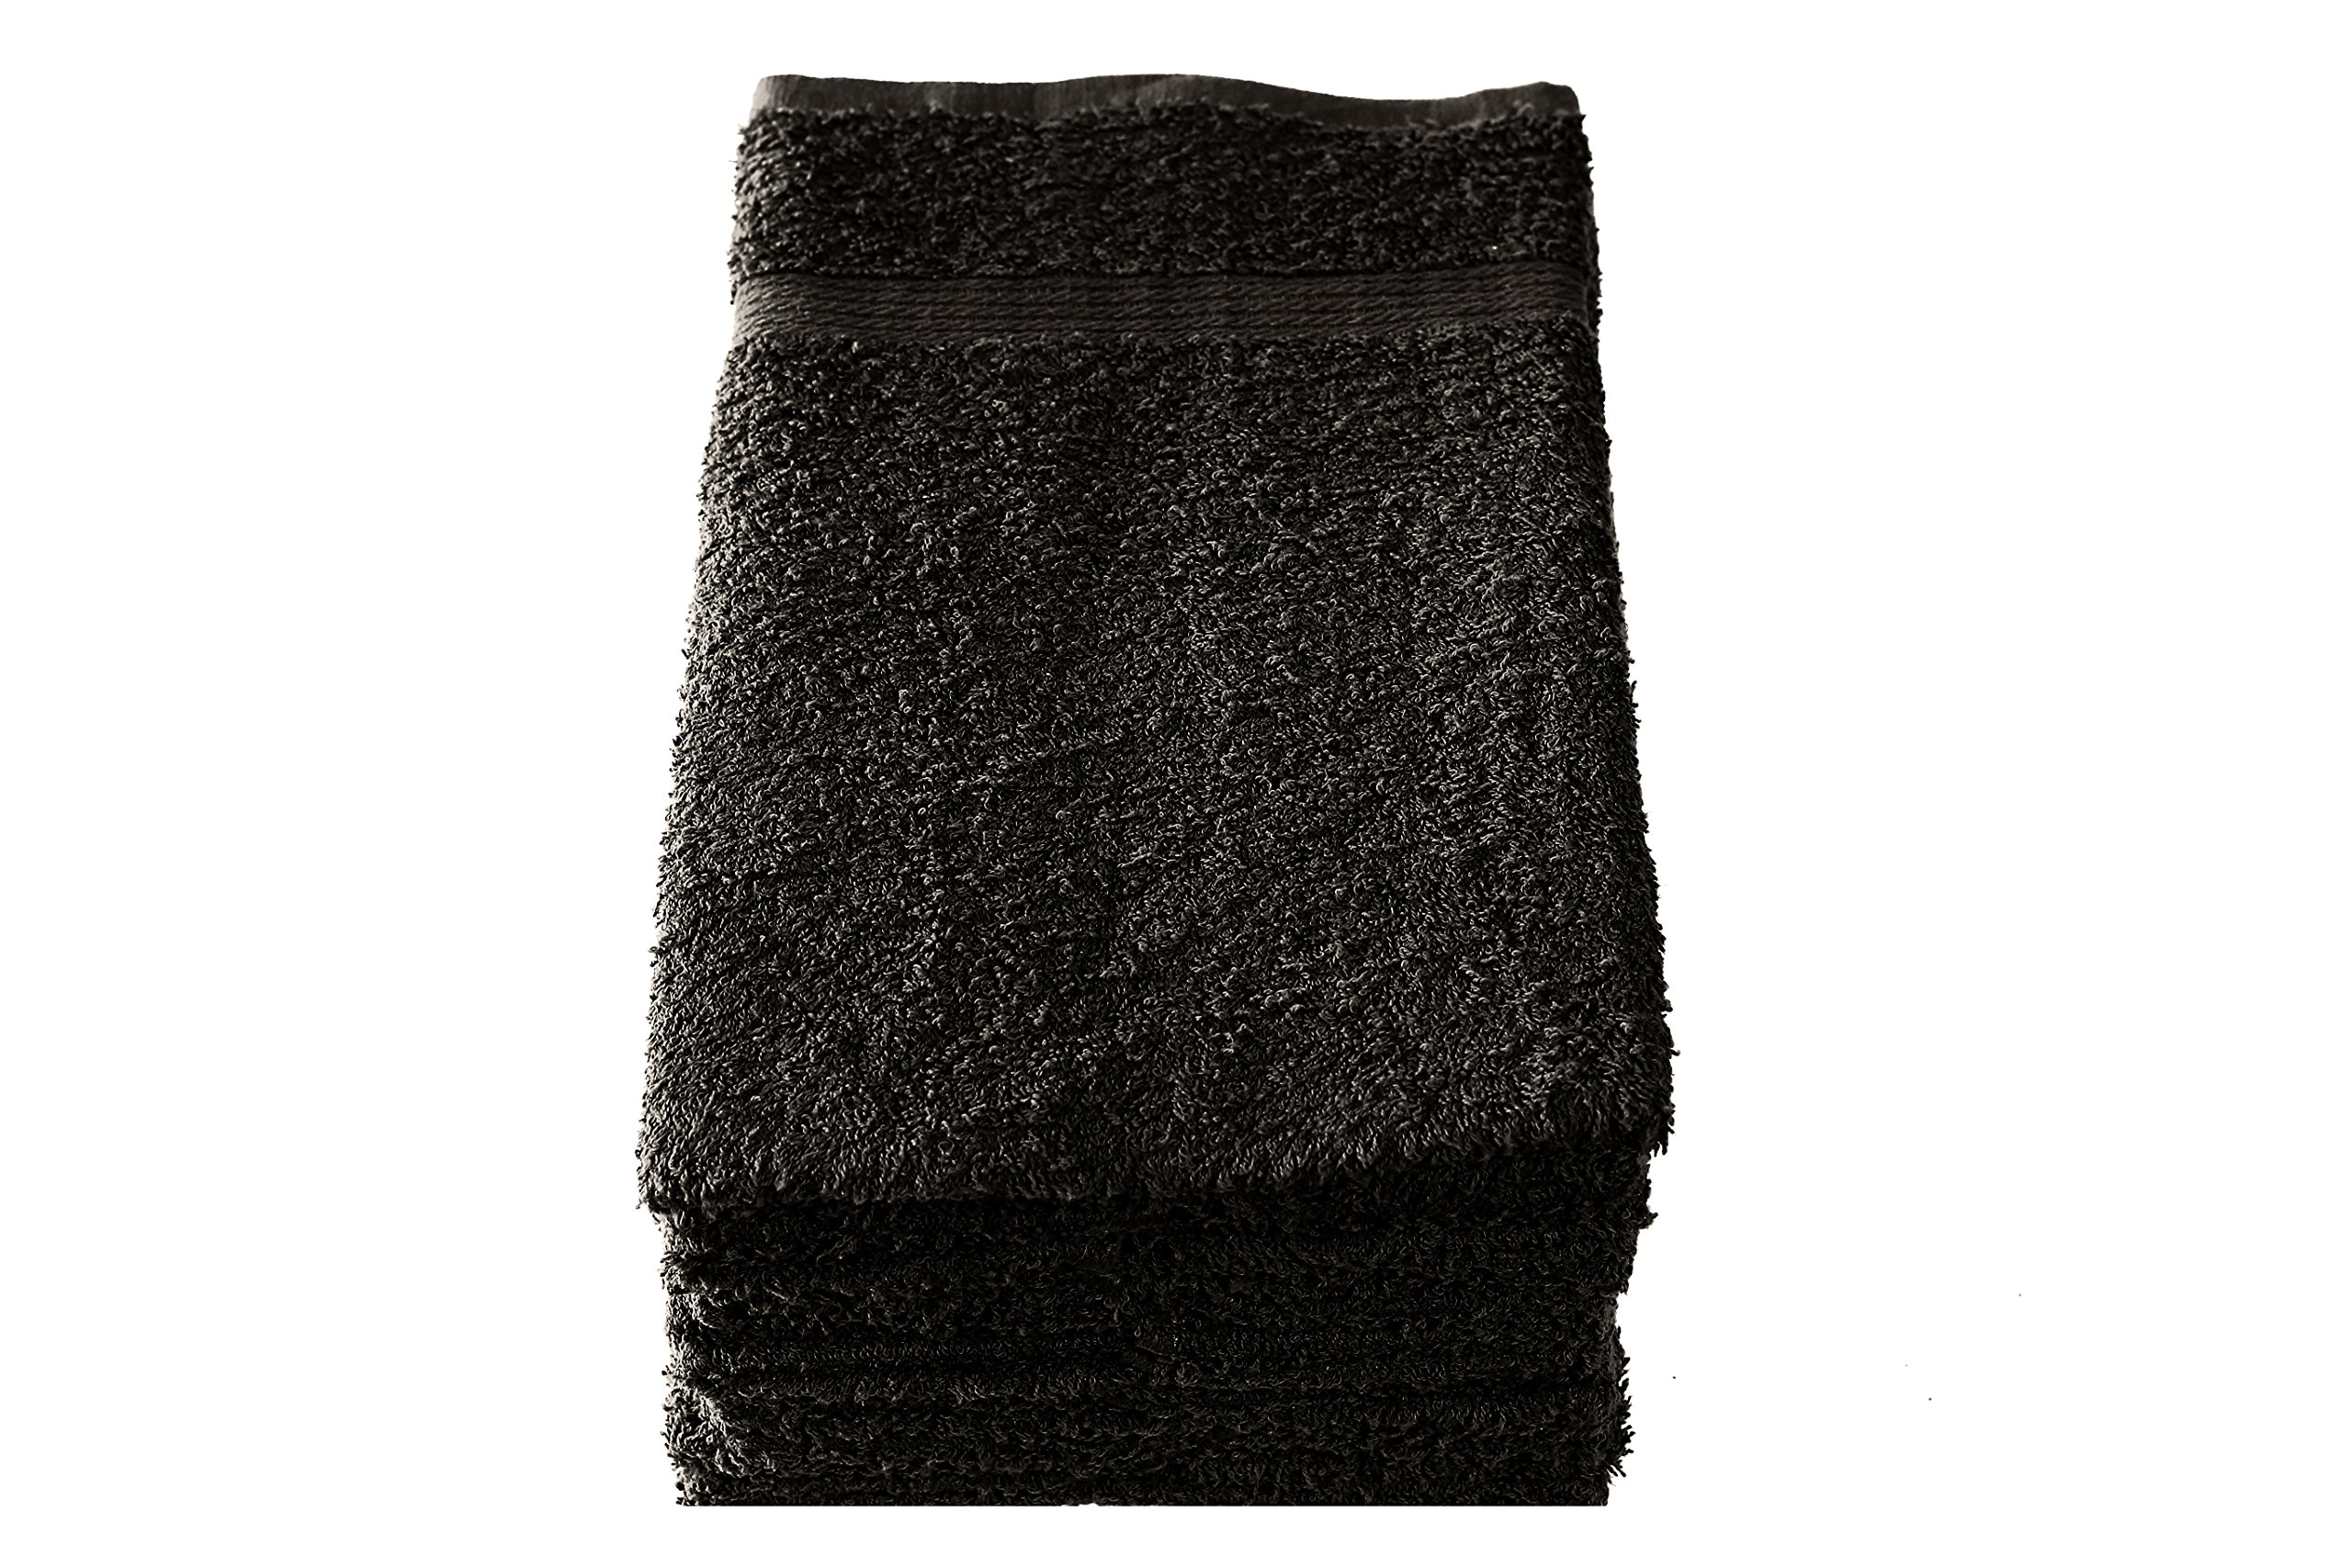 Heritage Linen Cotton Salon Towels - Spa Towels - Gym Towels - Hand Towels (24-Pack, Black, 16x27 inches) - Ringspun Cotton, Soft & Absorbent, Quick Dry by